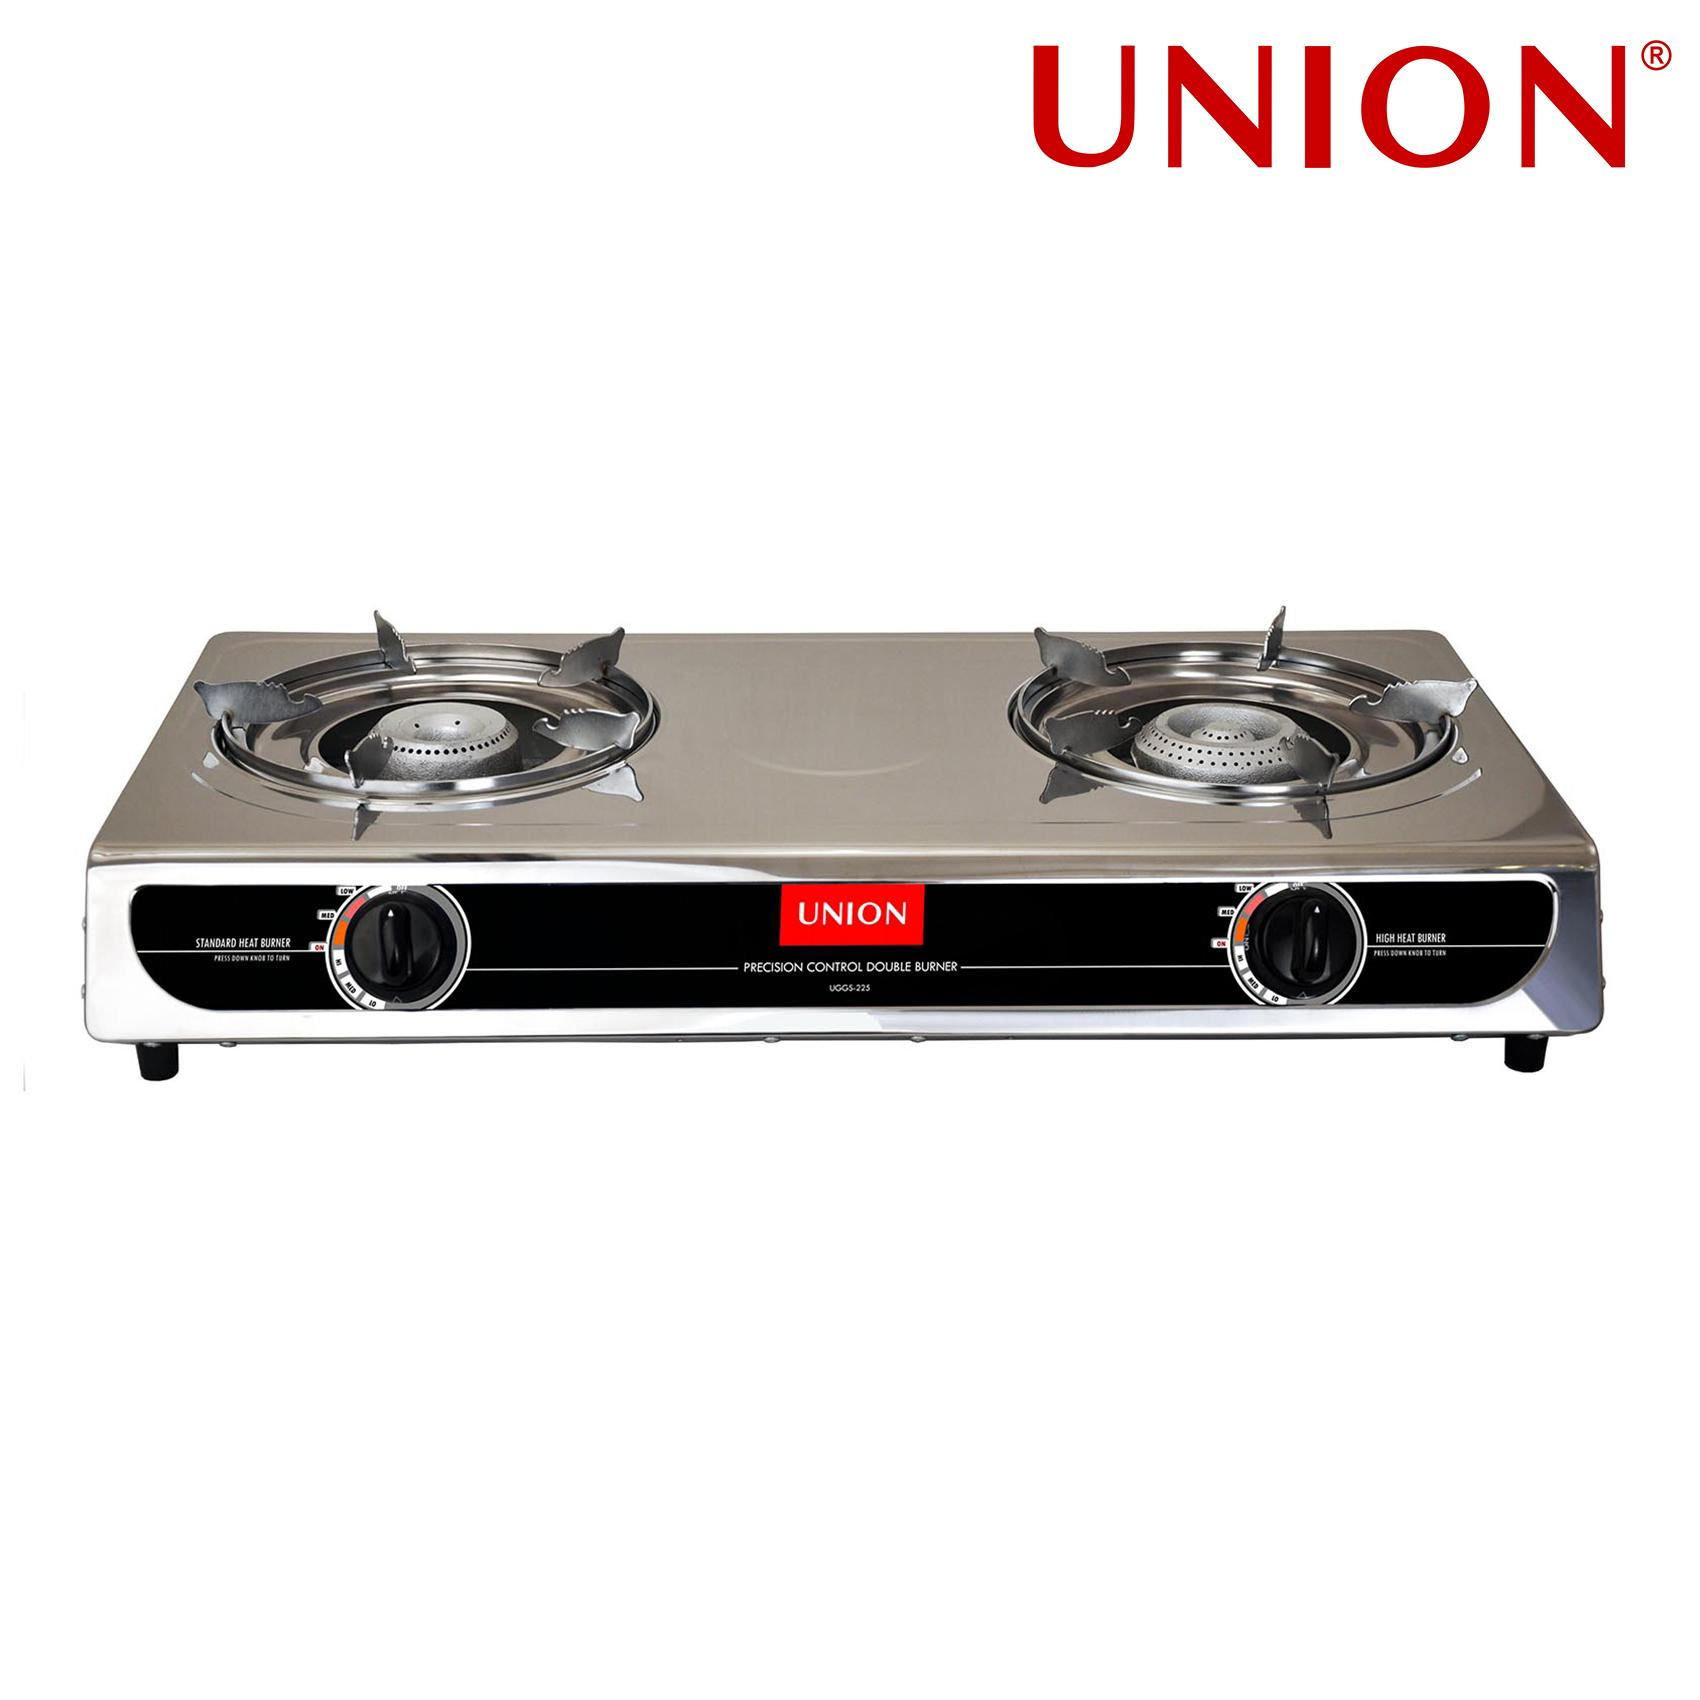 Union UGGS-225 Double Burner Precision Heating Gas Stove (Silver/Black) Philippines